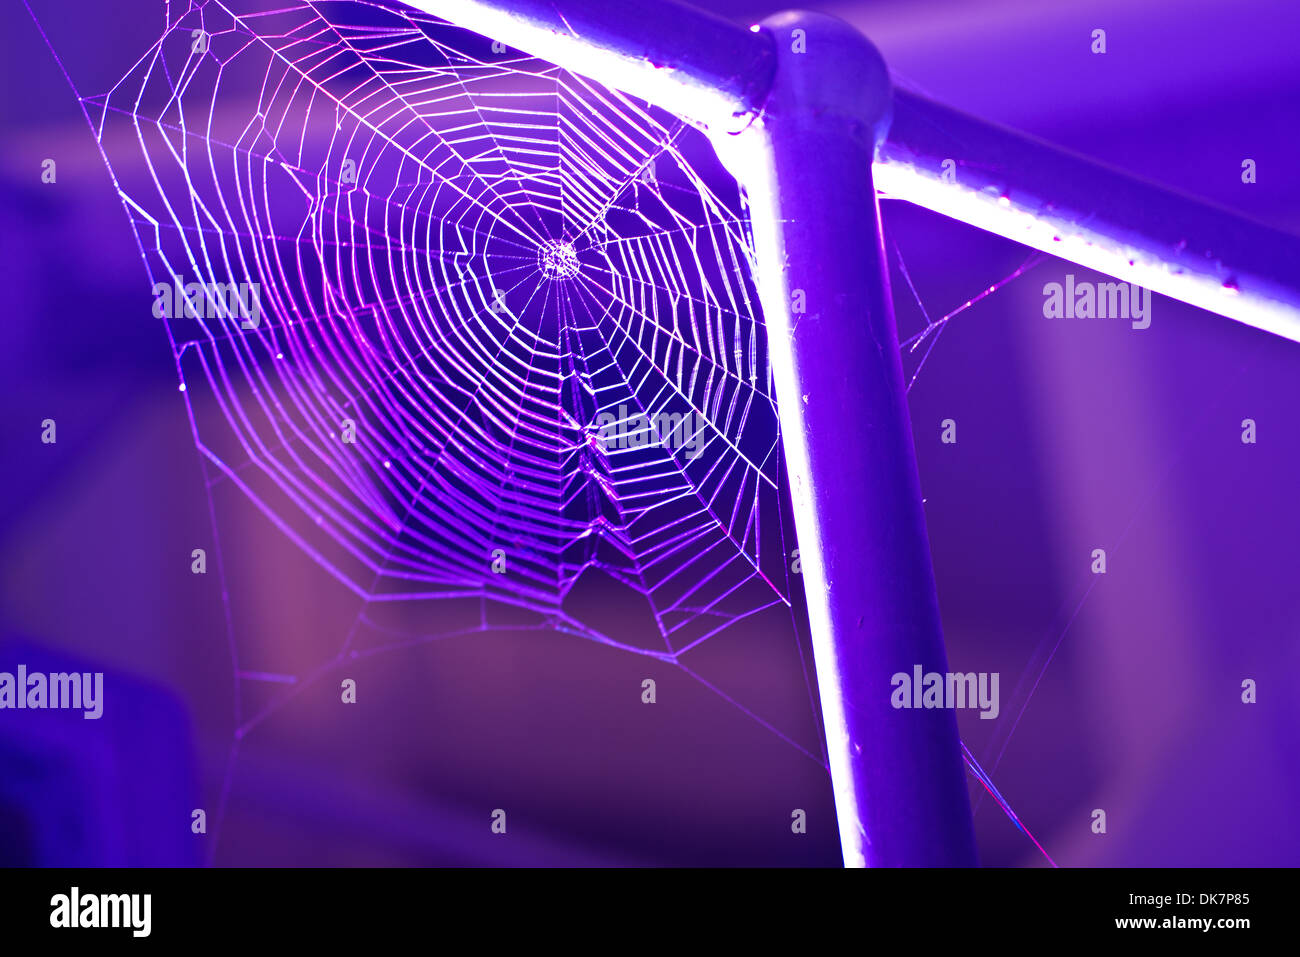 Spider web attached to white railing and lit by purple light - Stock Image